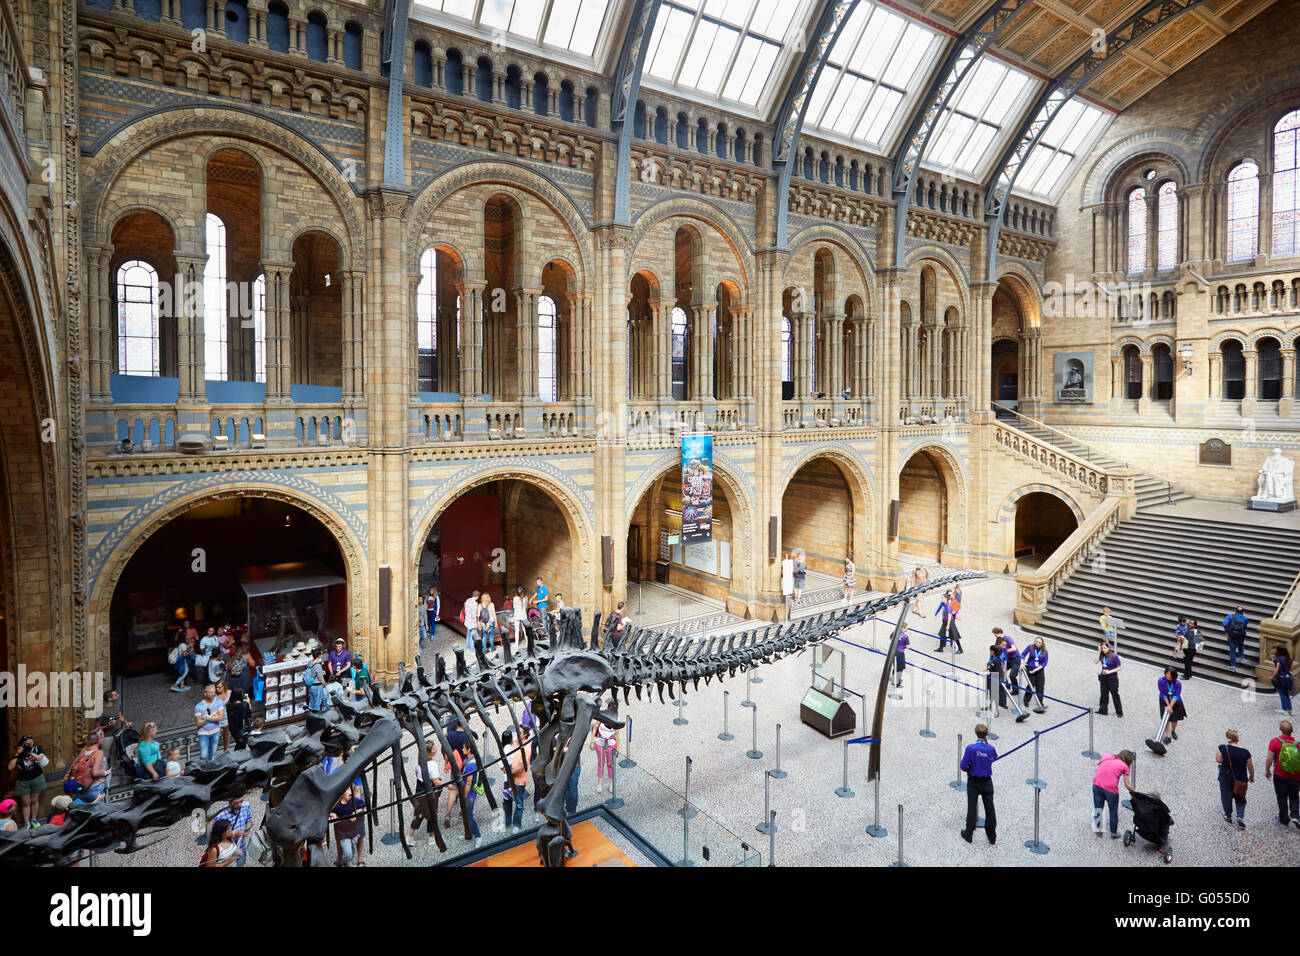 Natural History Museum interior with people and tourists and dinosaur skeleton in London - Stock Image